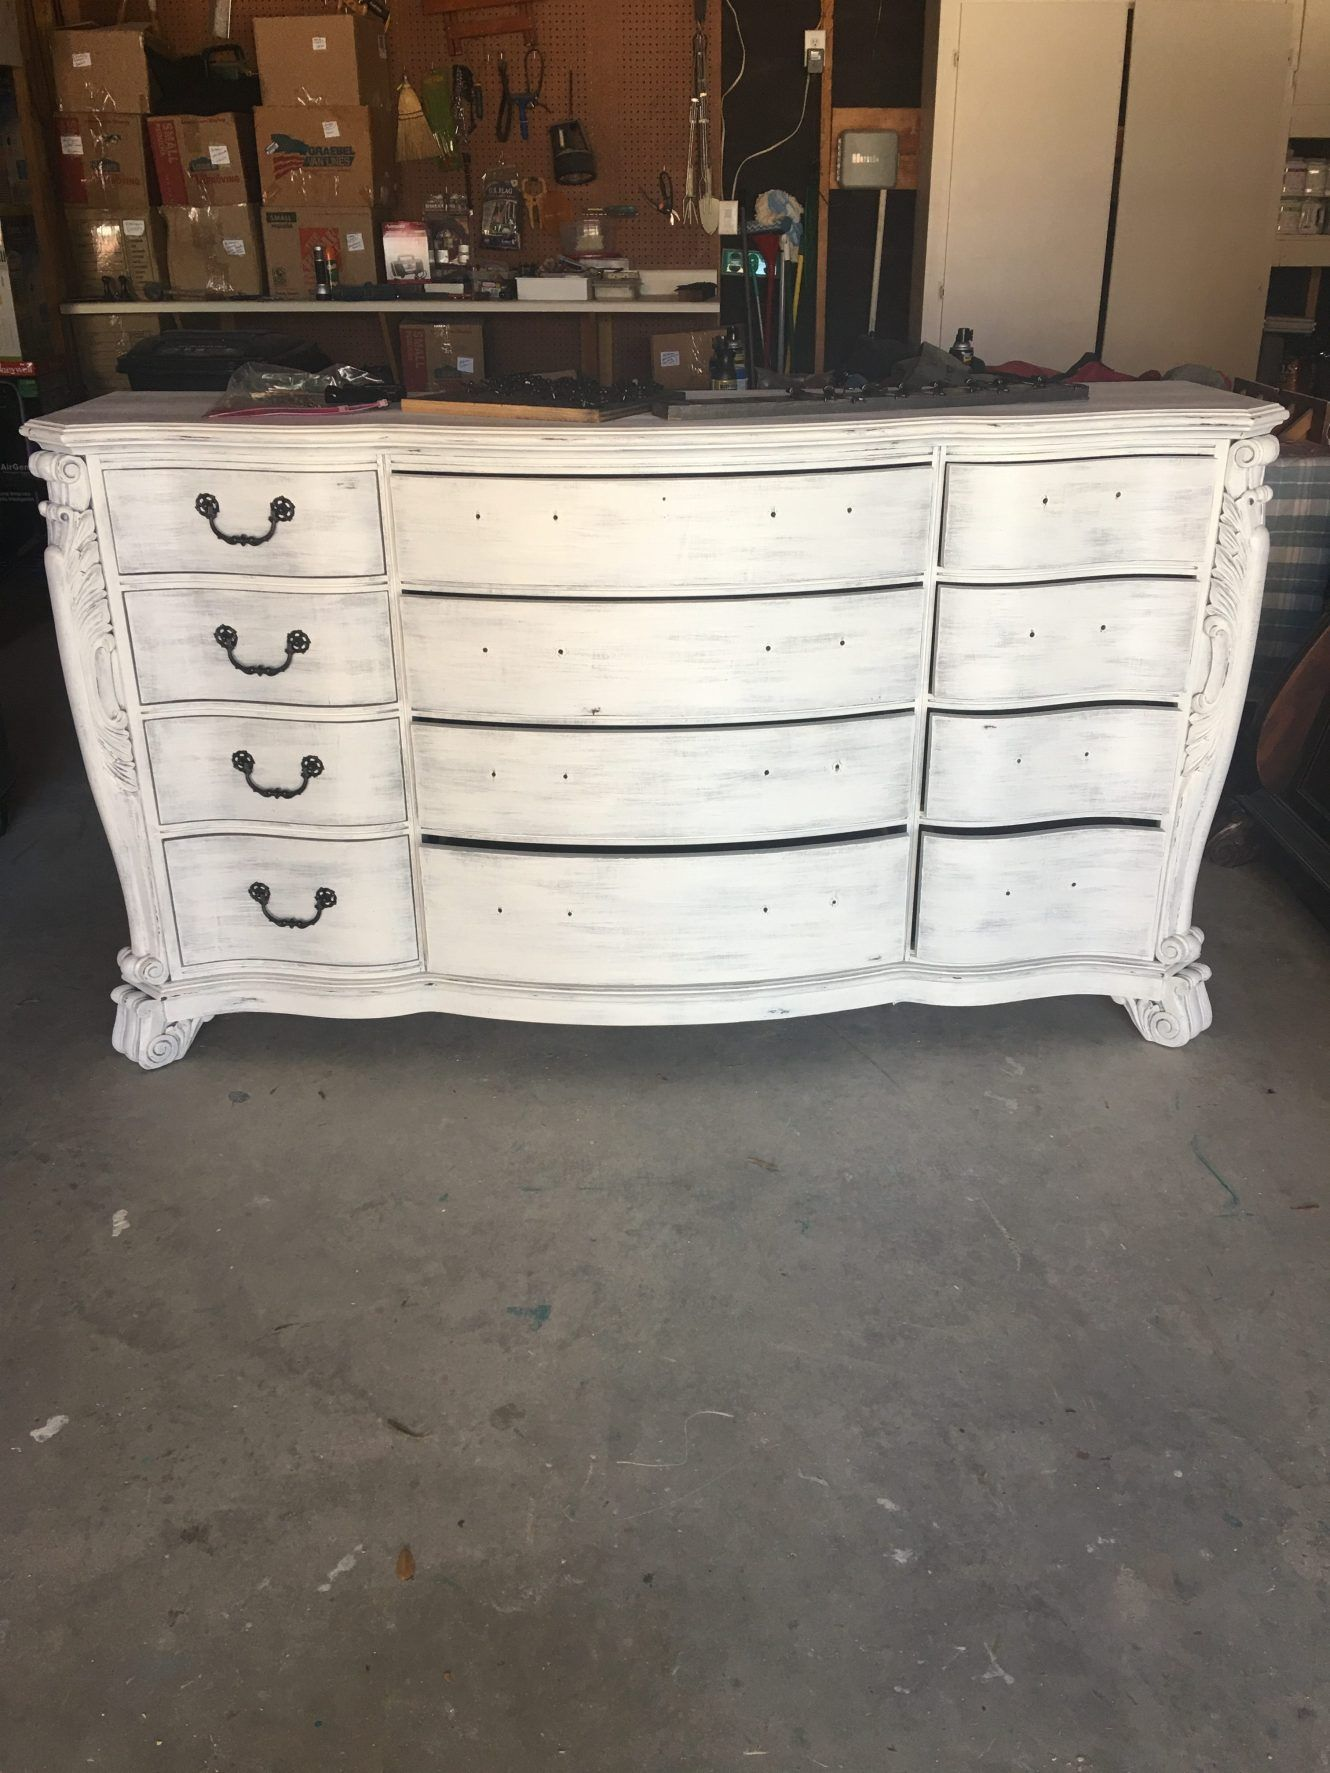 Painting 101 White Washed Dresser Tutorial White Wash Dresser White Wash Bedroom Dresser Styling